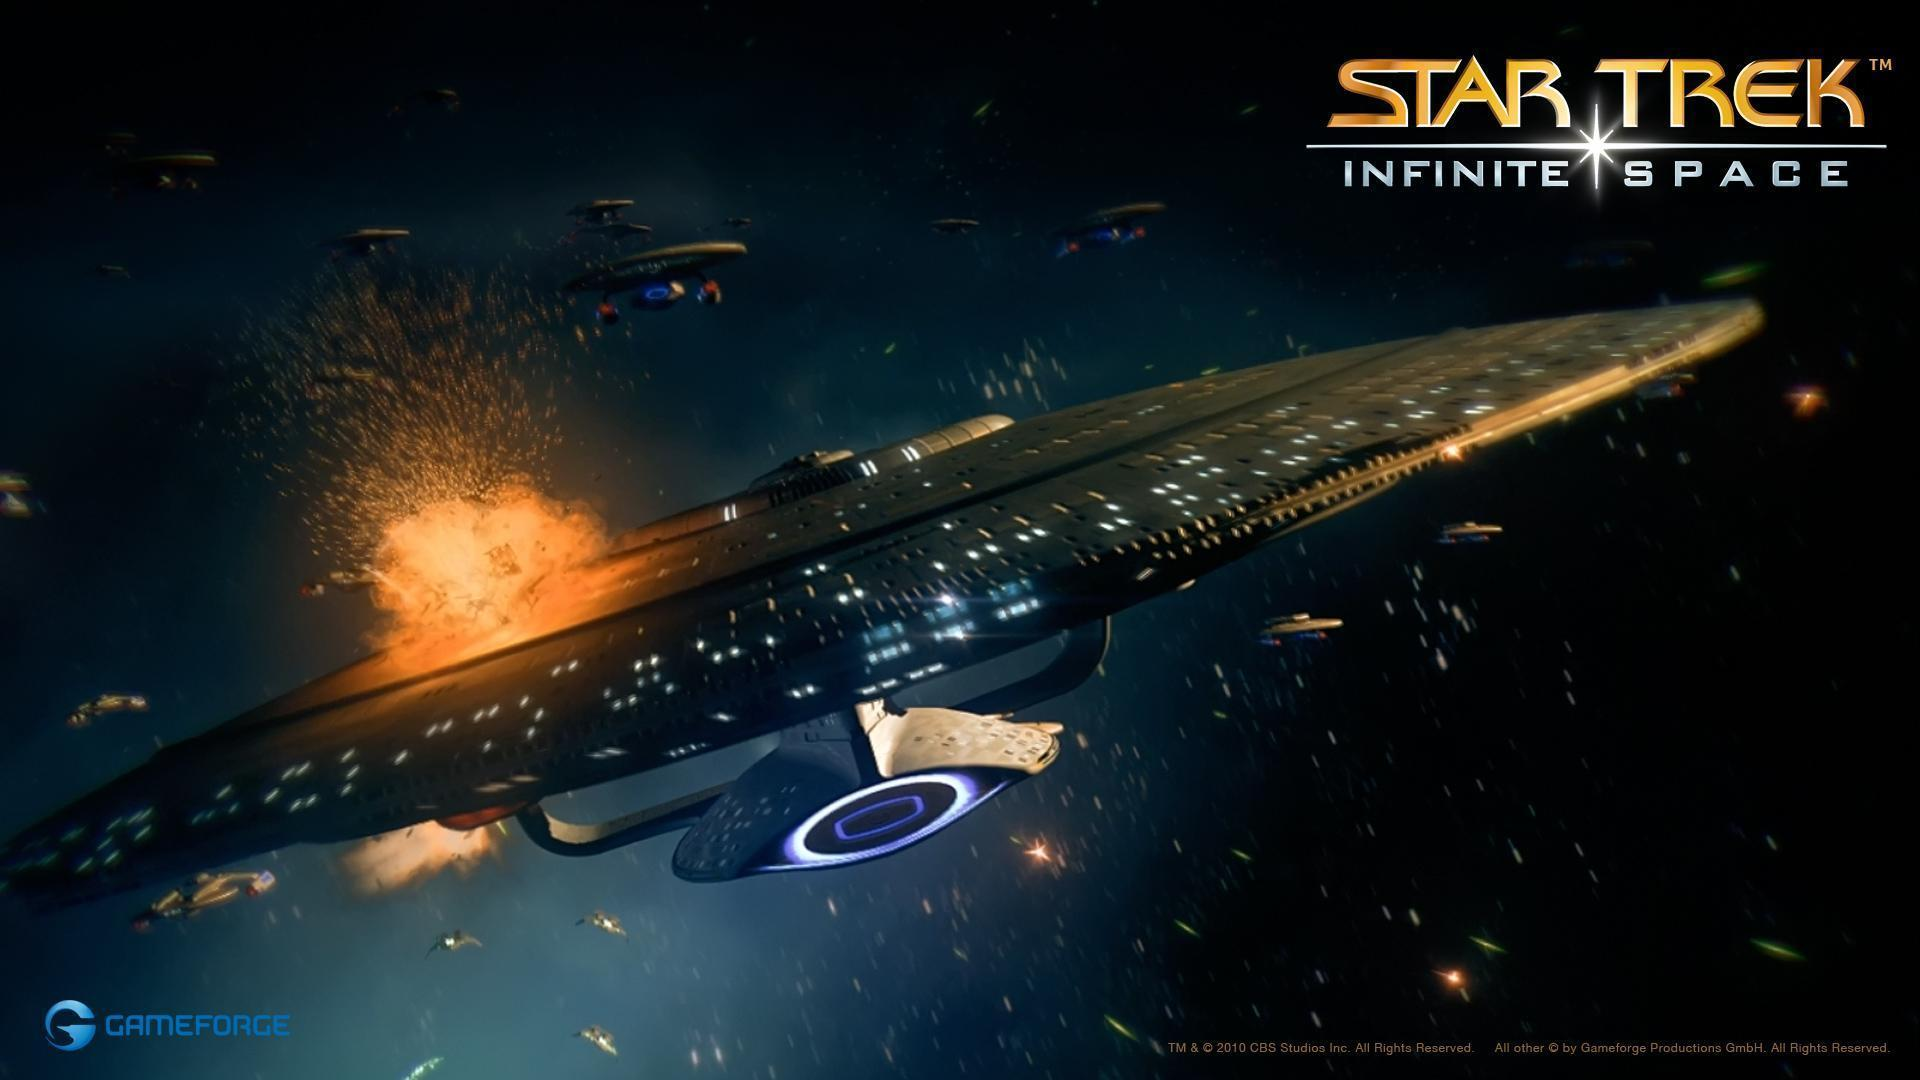 android star trek wallpaper 1920x1080 - photo #23